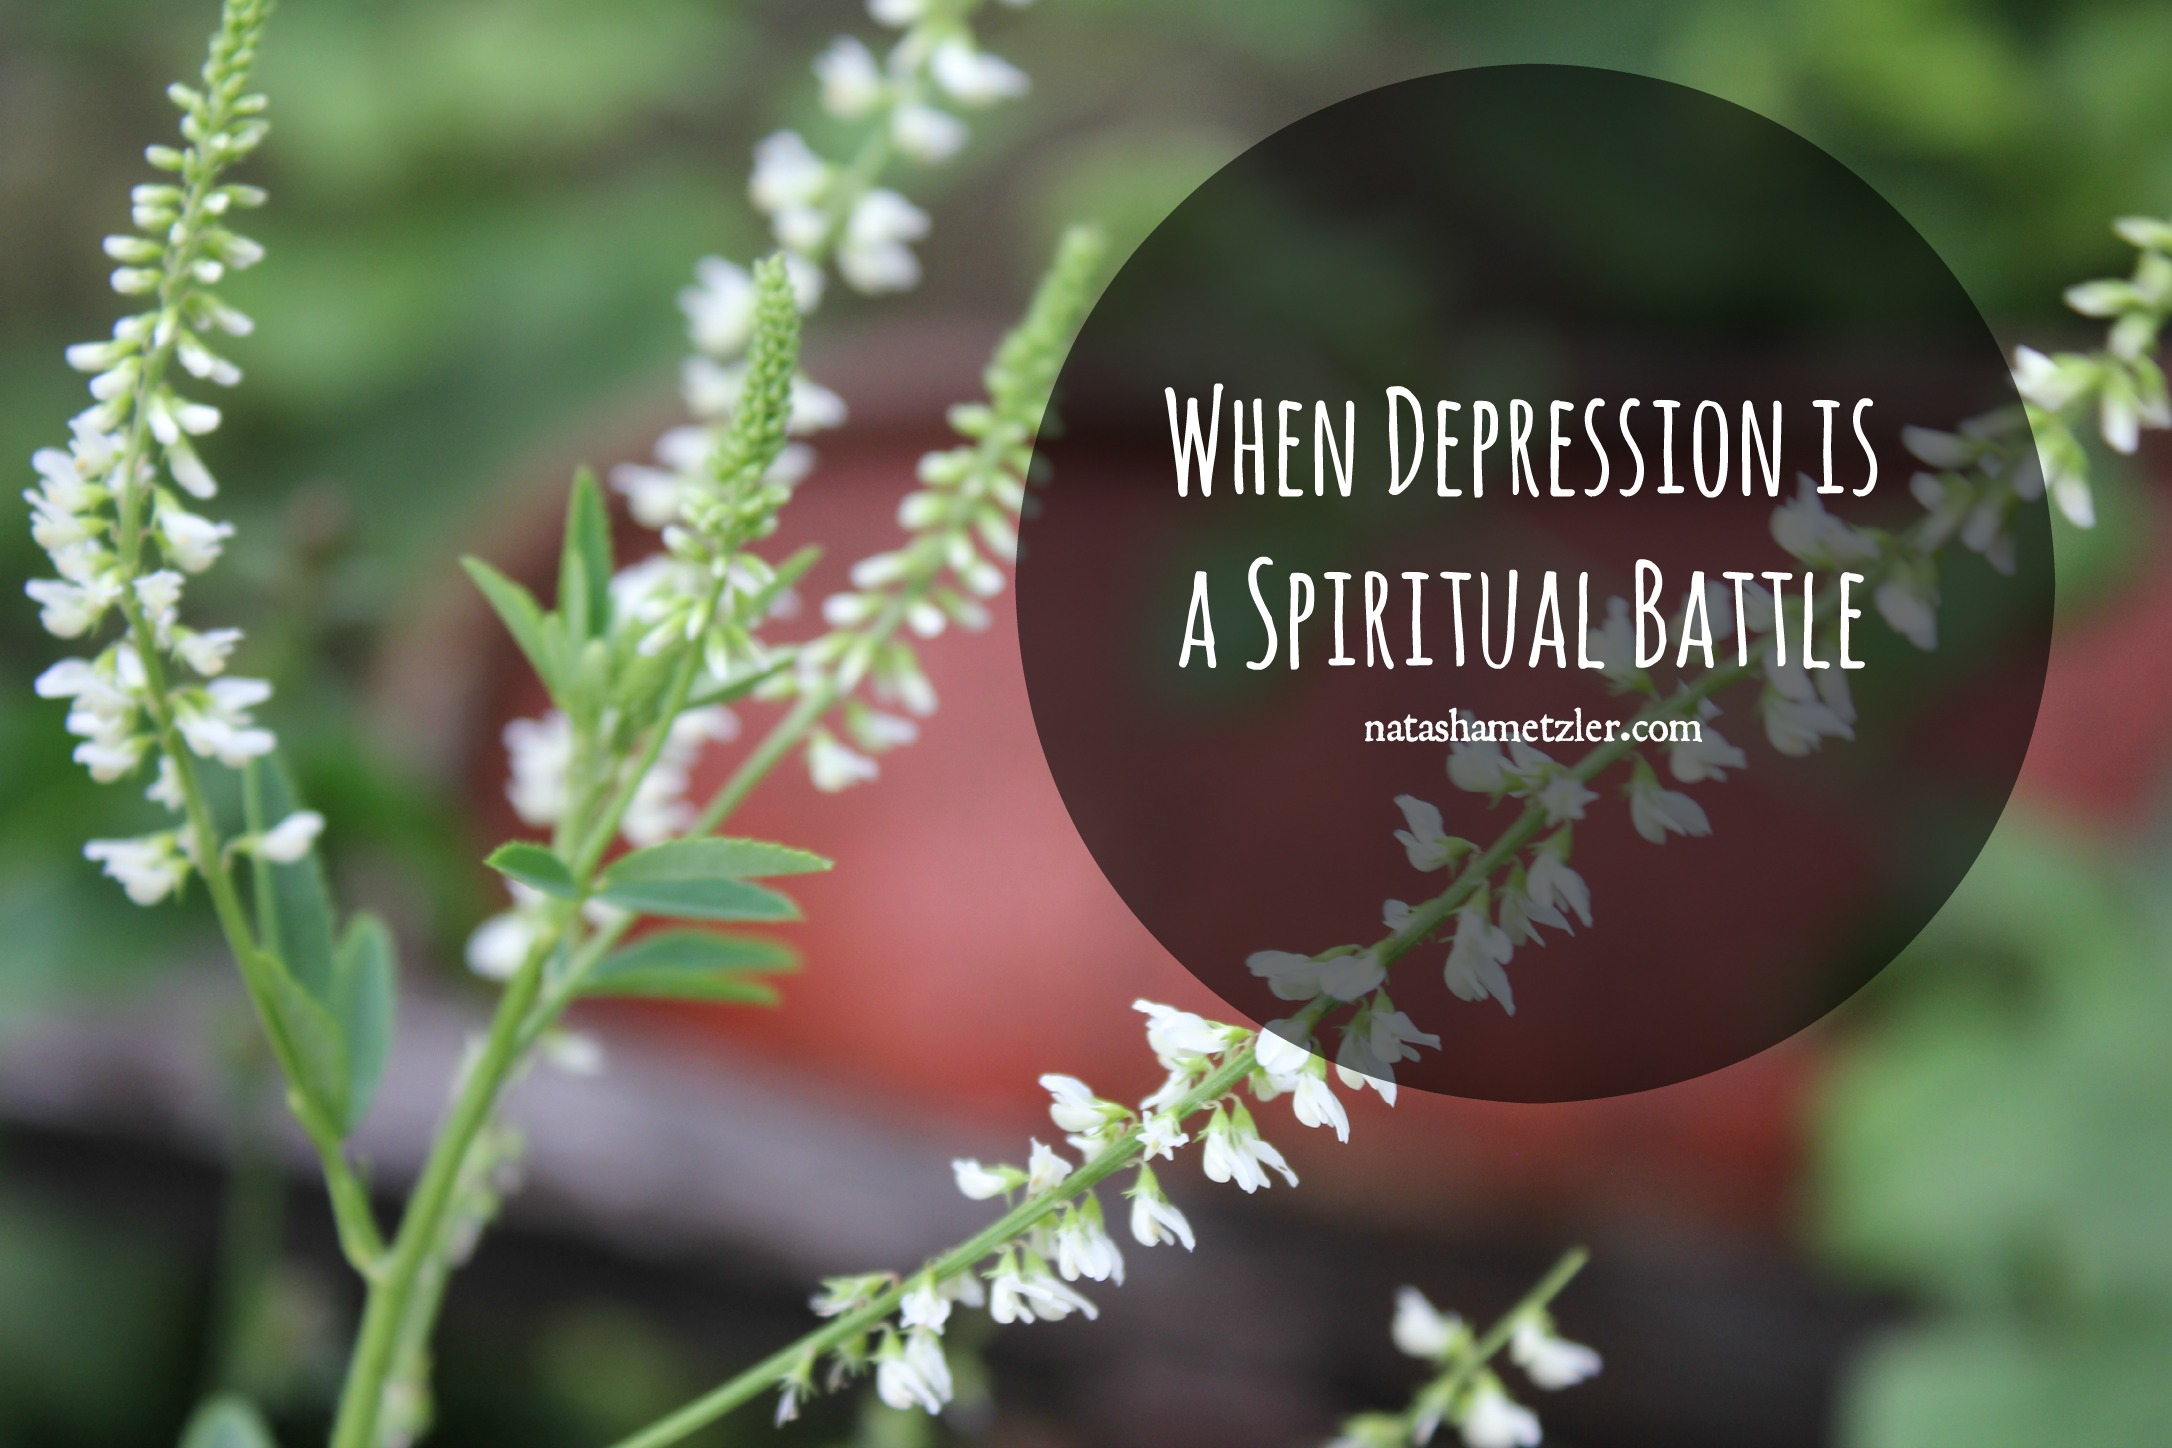 when depression is a spiritual battle